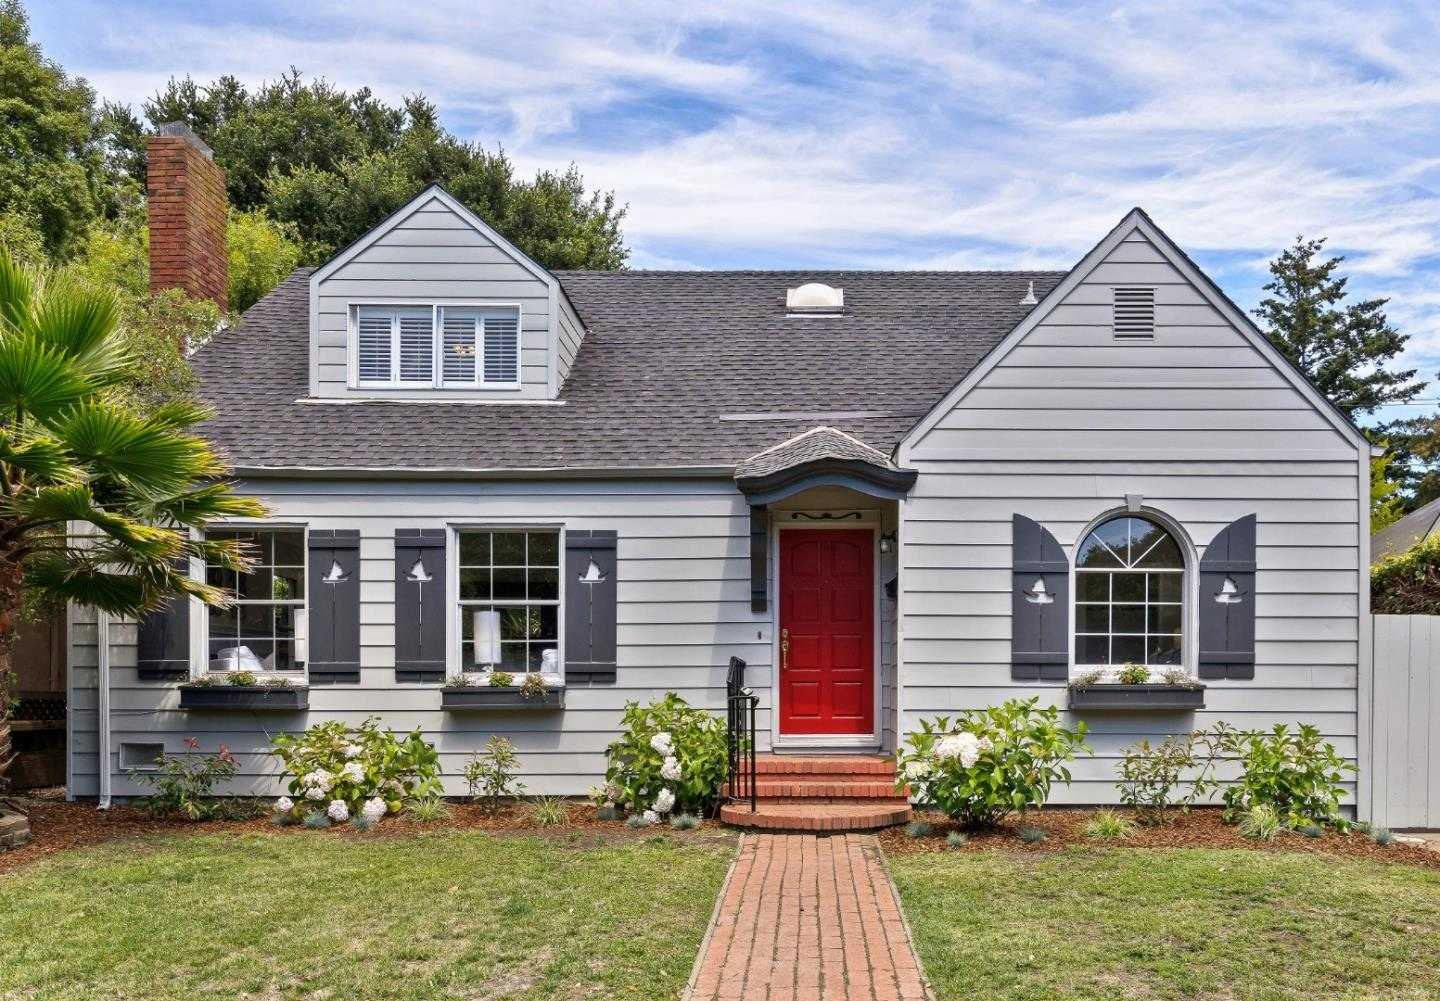 $2,175,000 - 4Br/2Ba -  for Sale in Burlingame